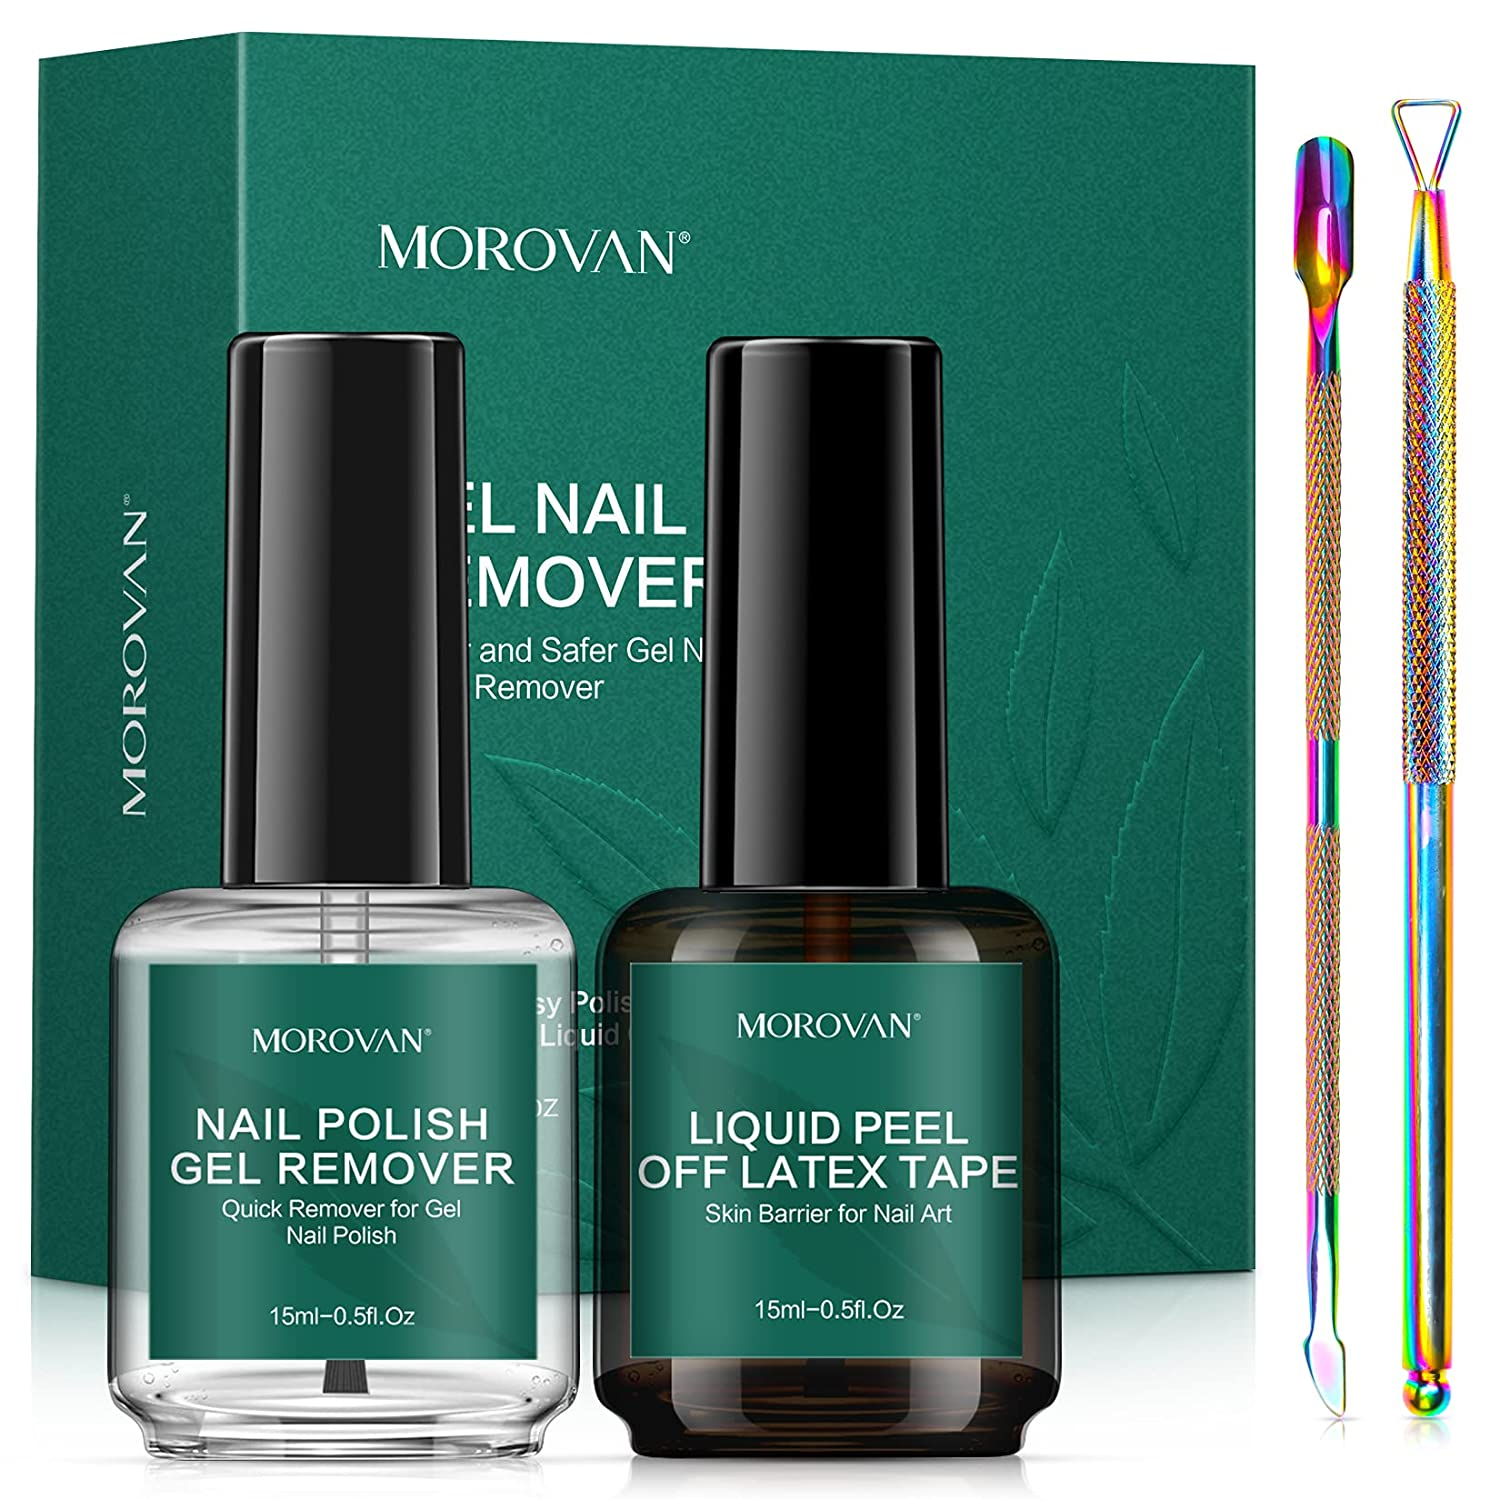 Morovan Gel Nail Polish Remover New product! New type Kit Pack New product Re 2 - Non-Acetone